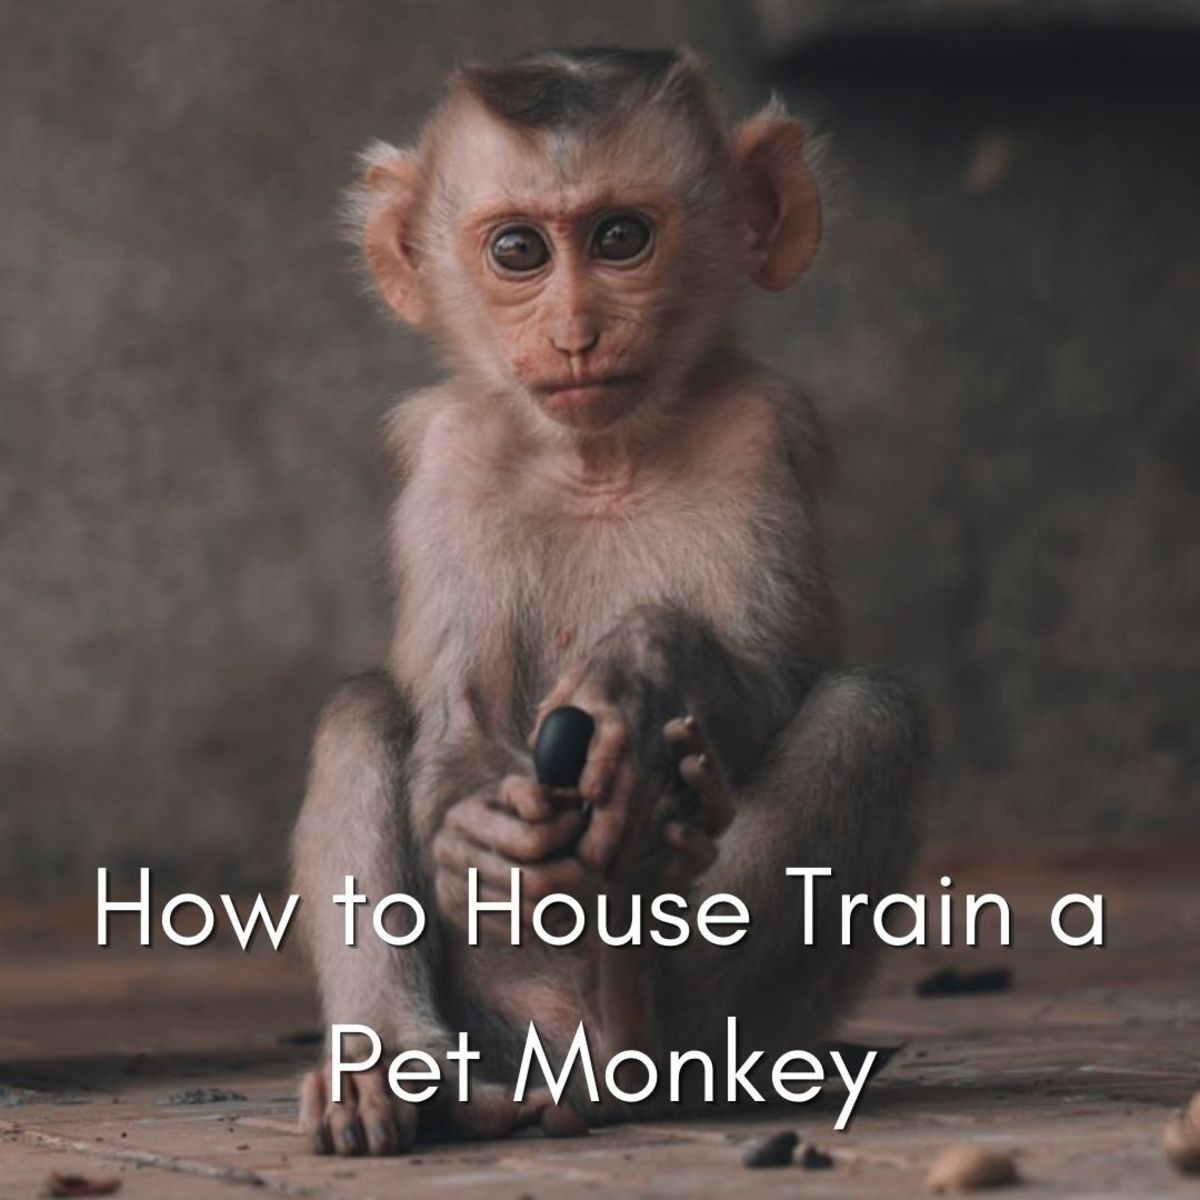 With a lot of effort, you can house train some monkeys.